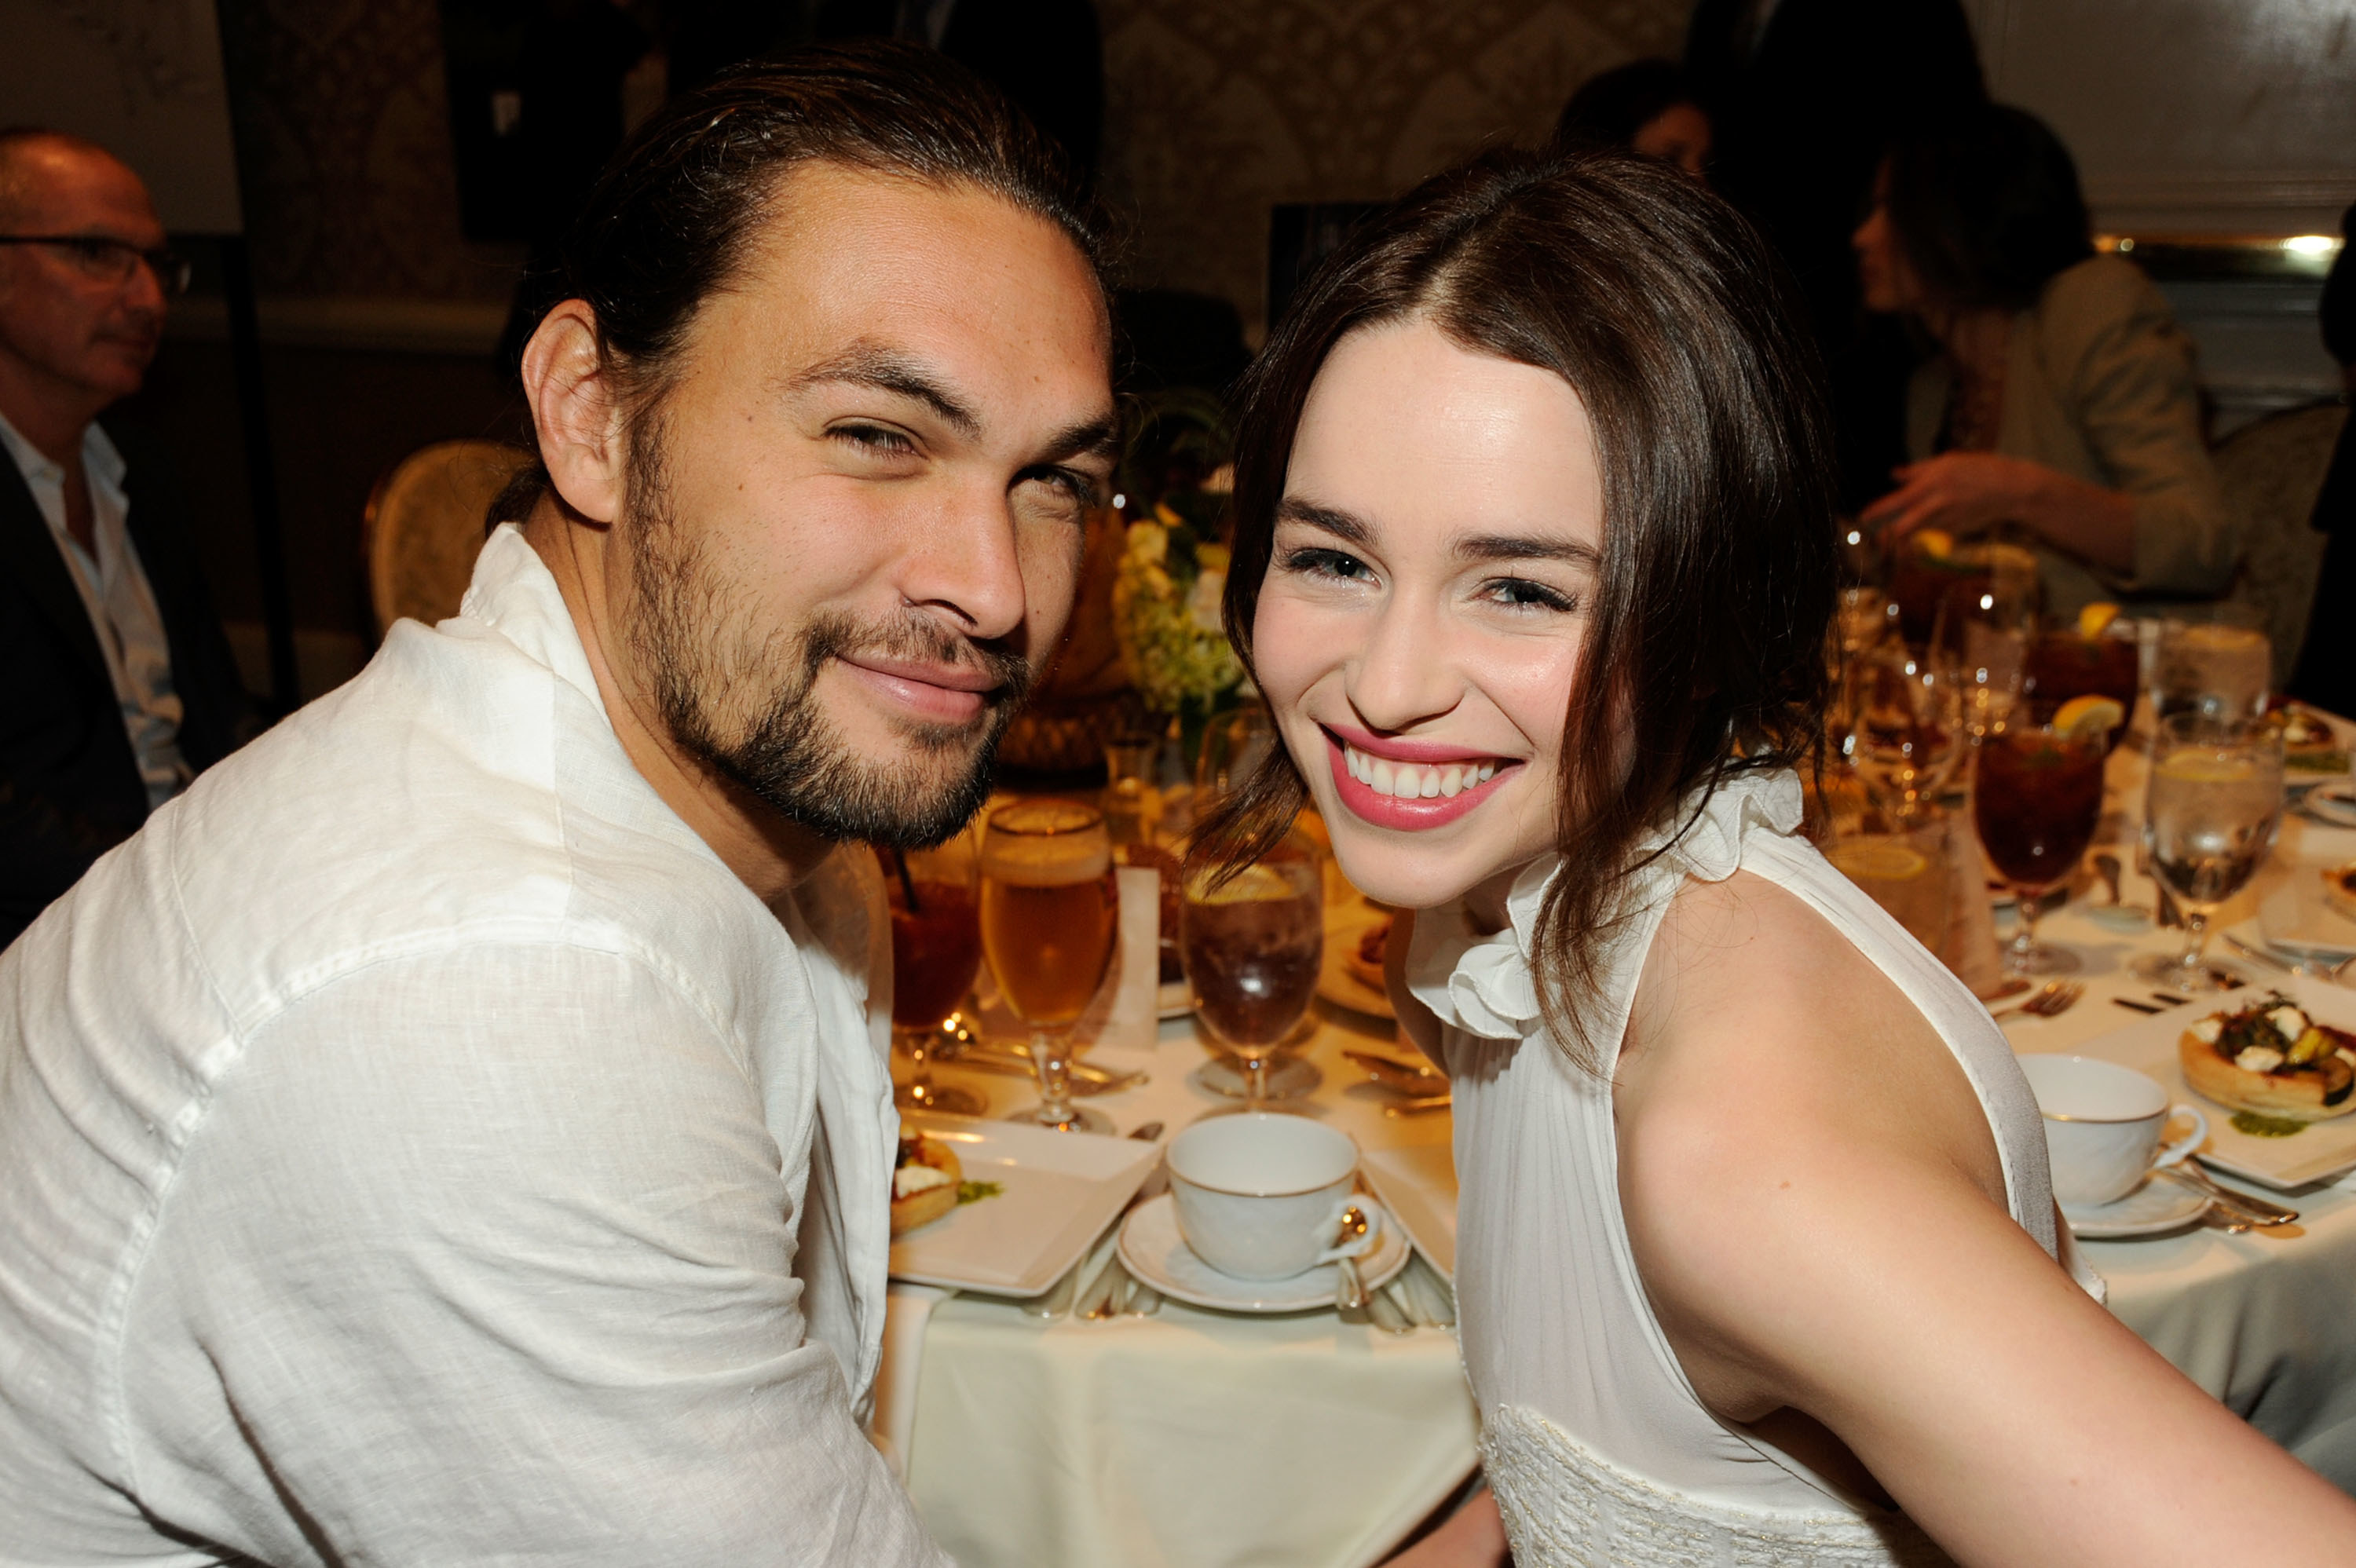 Jason and Emilia smile while sitting at a dinner table together